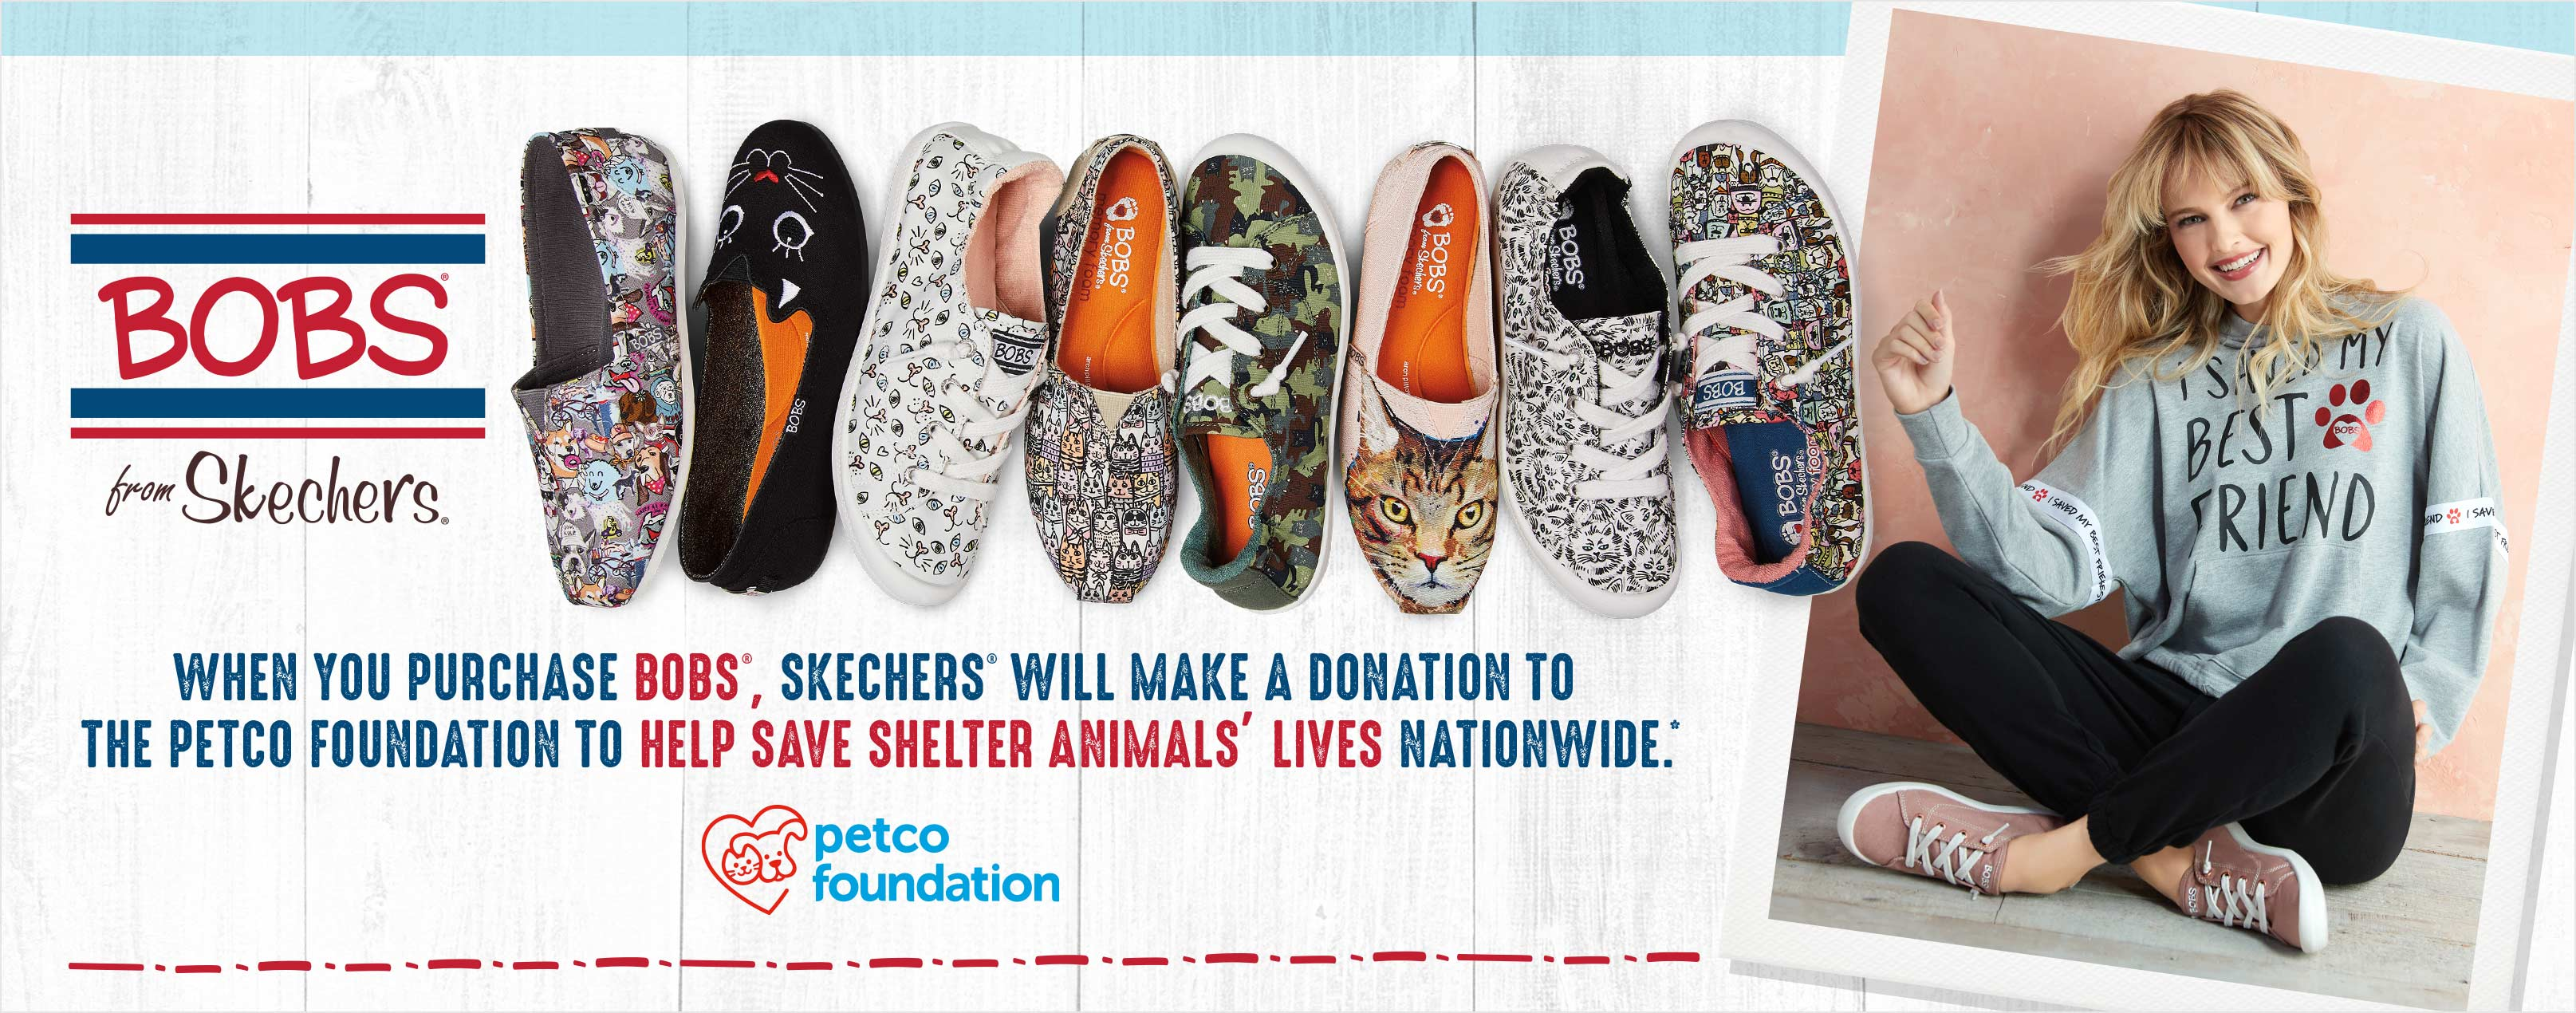 Skechers Bobs for Dogs Partners with Petco®